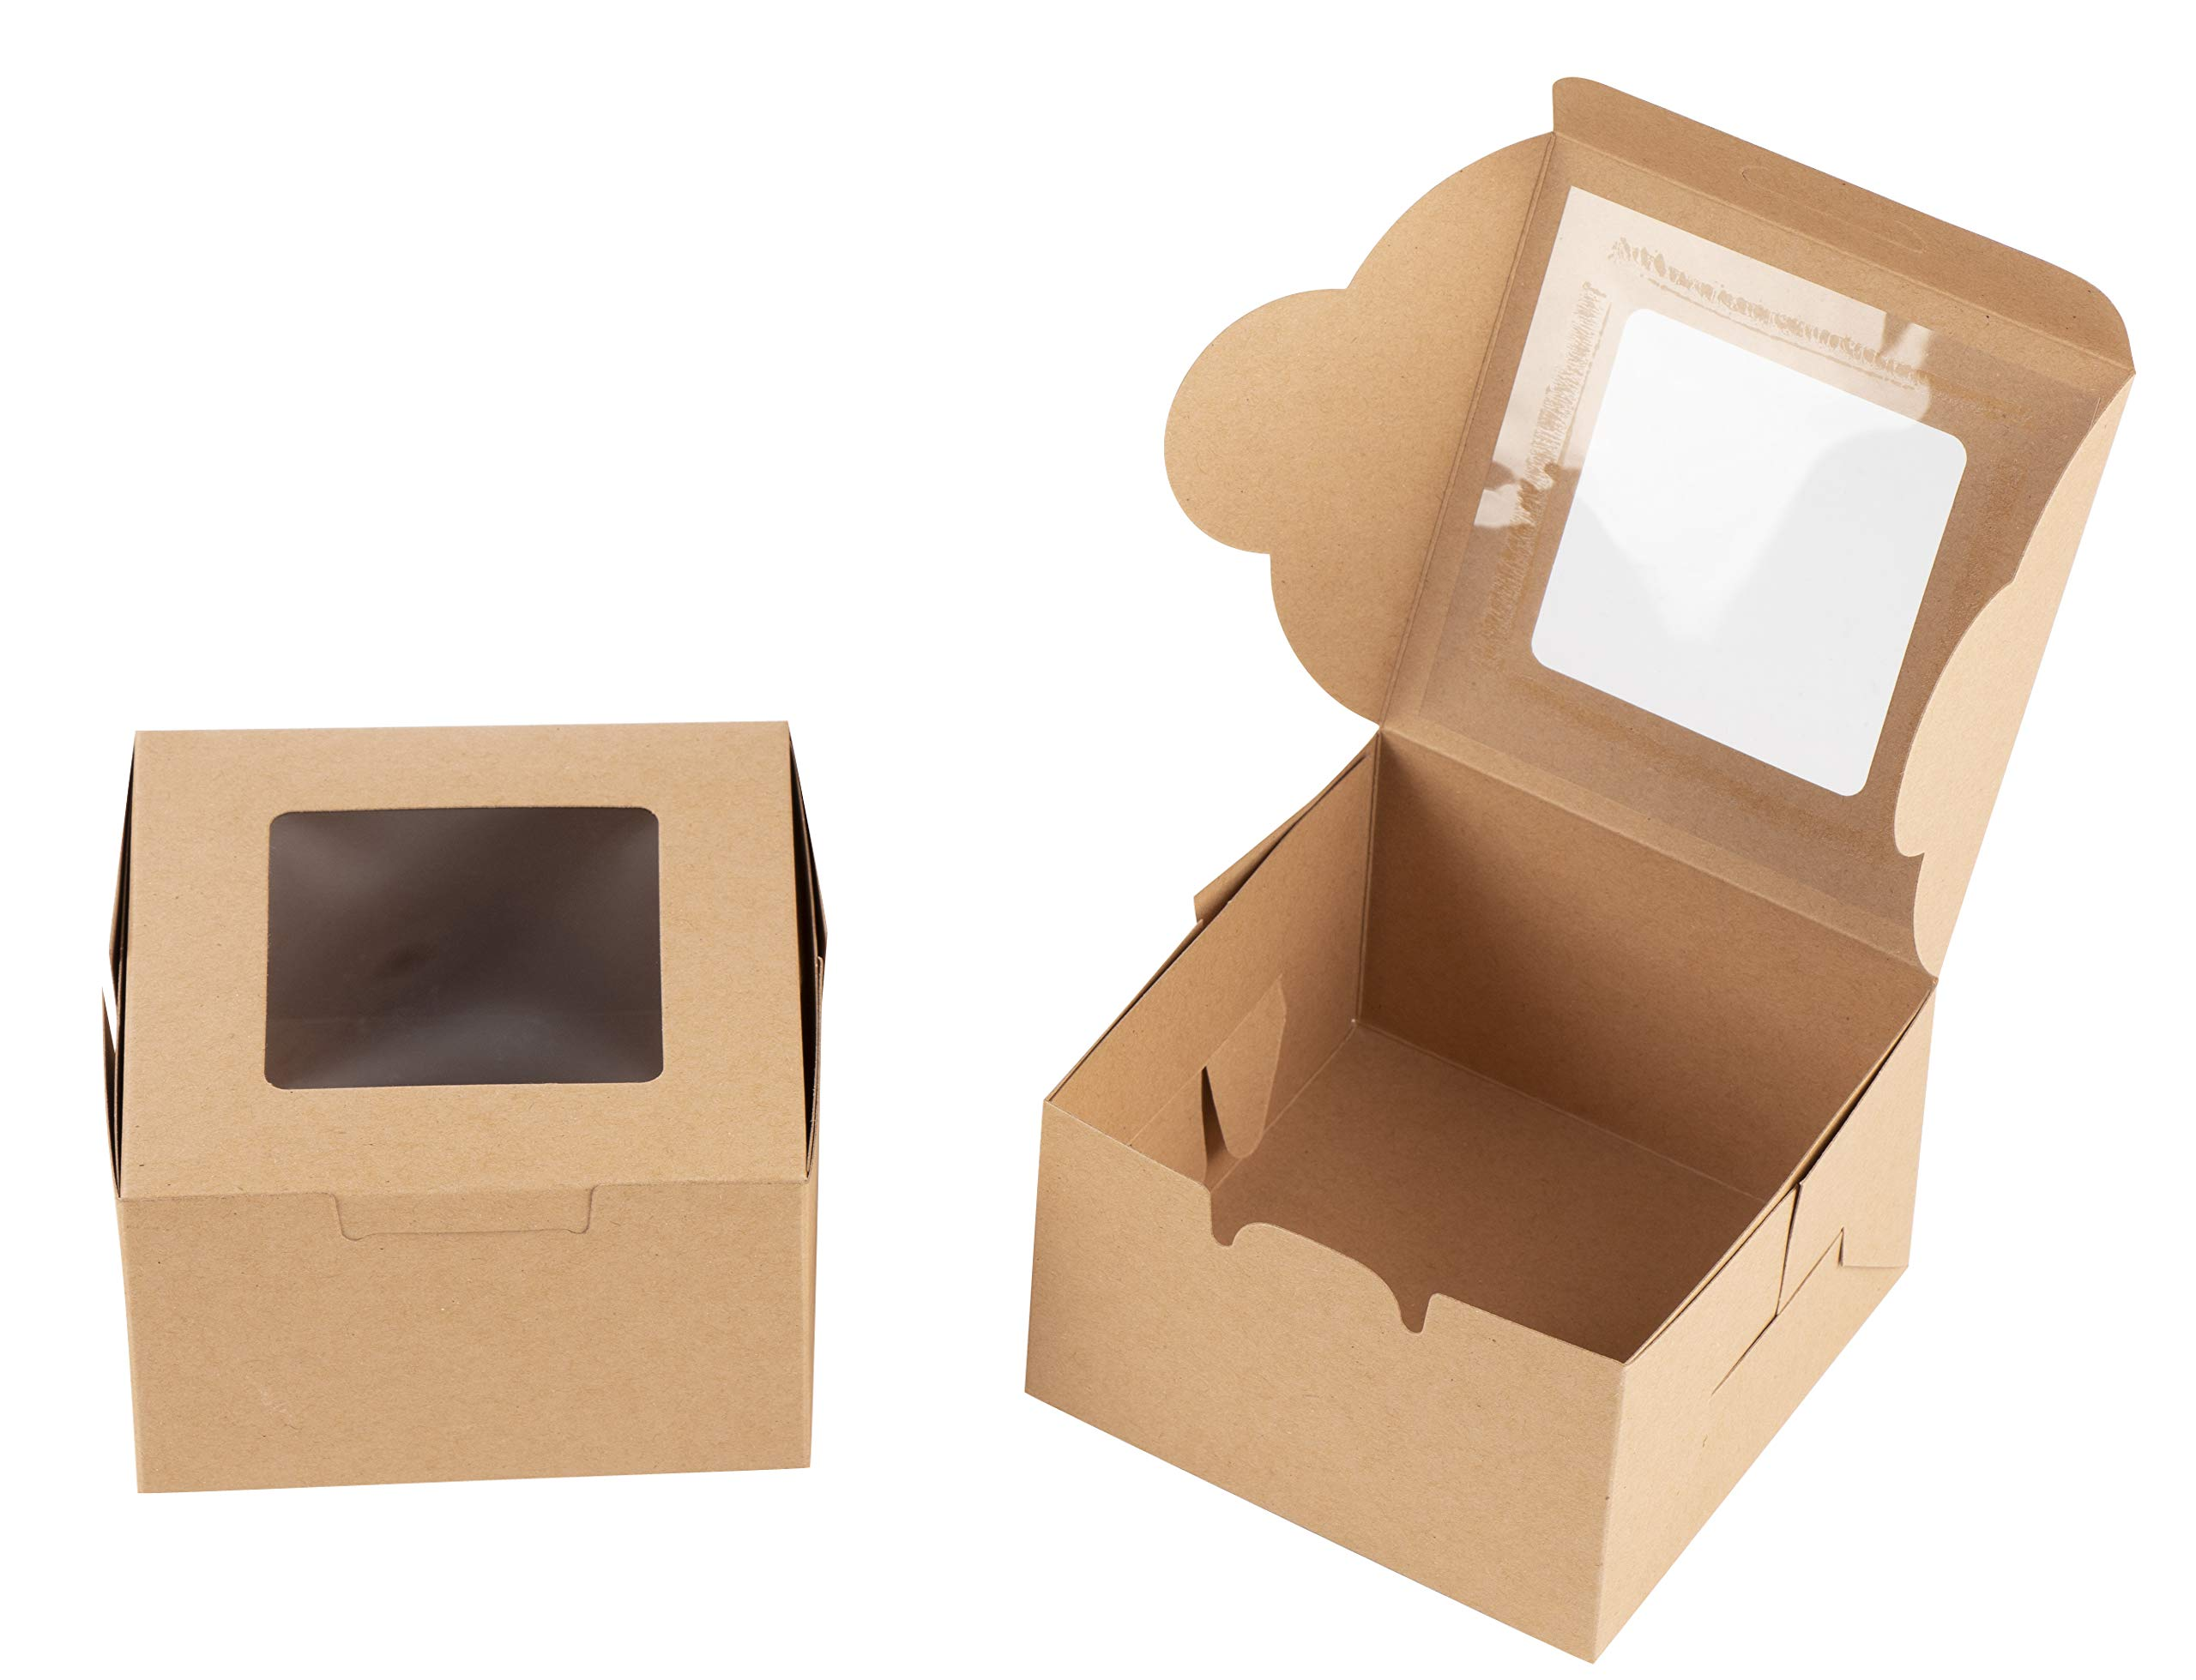 Kraft Paper Bakery Boxes - 50-Pack Single Pastry Box 4-Inch Packaging with Clear Display Window, Donut, Mini Cake, Pie Slice, Dessert Disposable Take-Out Container, Holds 1, Brown, 4 x 2.3 x 4 Inches by Juvale (Image #4)